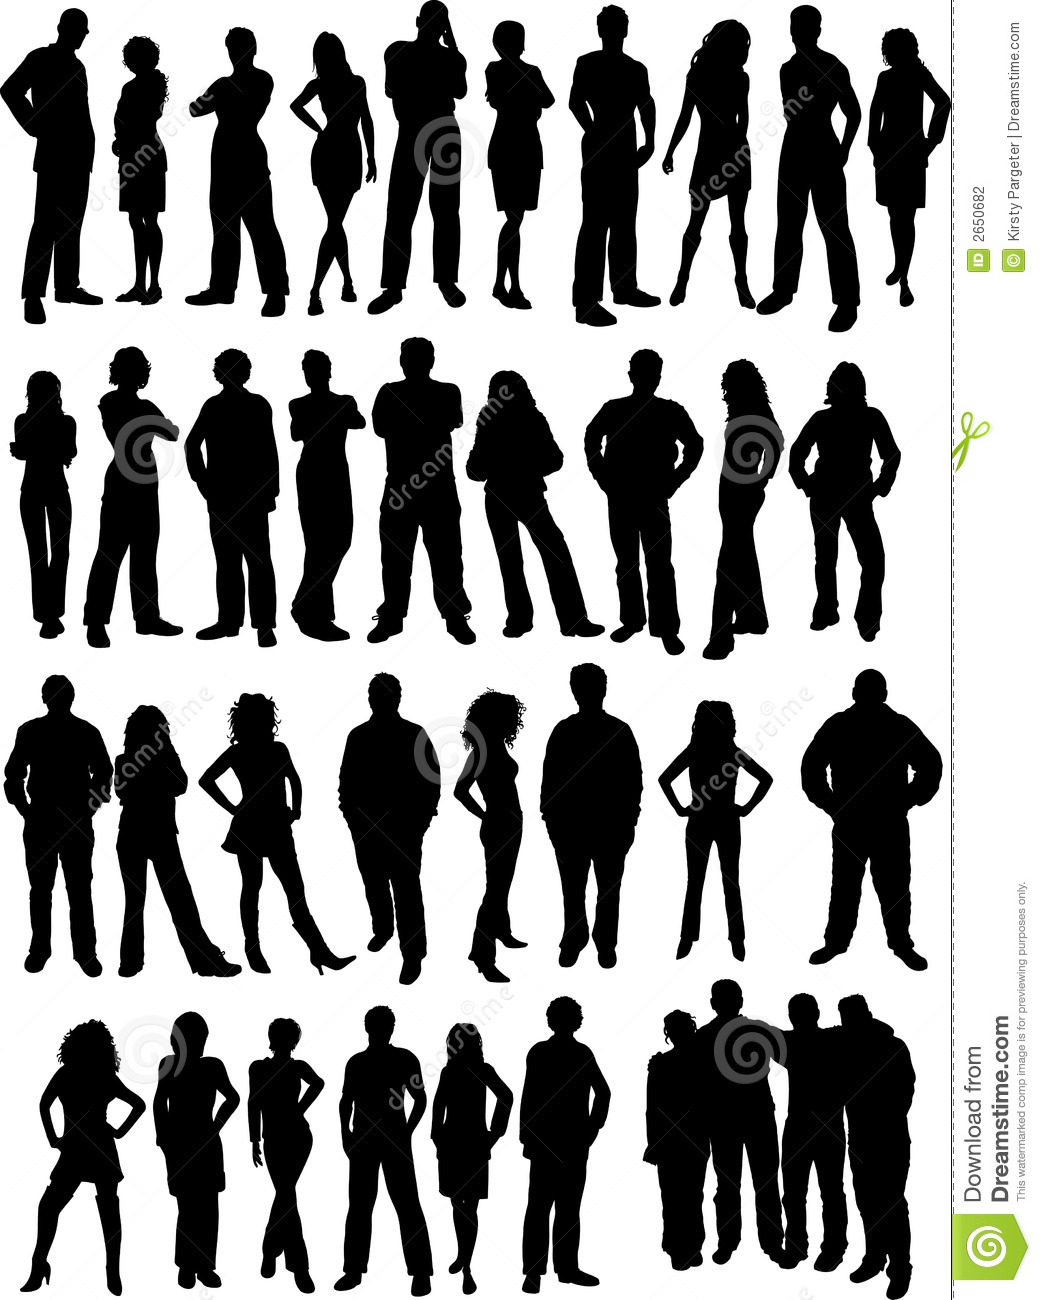 14 architecture ruler vector silhouettes images engineering drafting tools man with hard hat. Black Bedroom Furniture Sets. Home Design Ideas